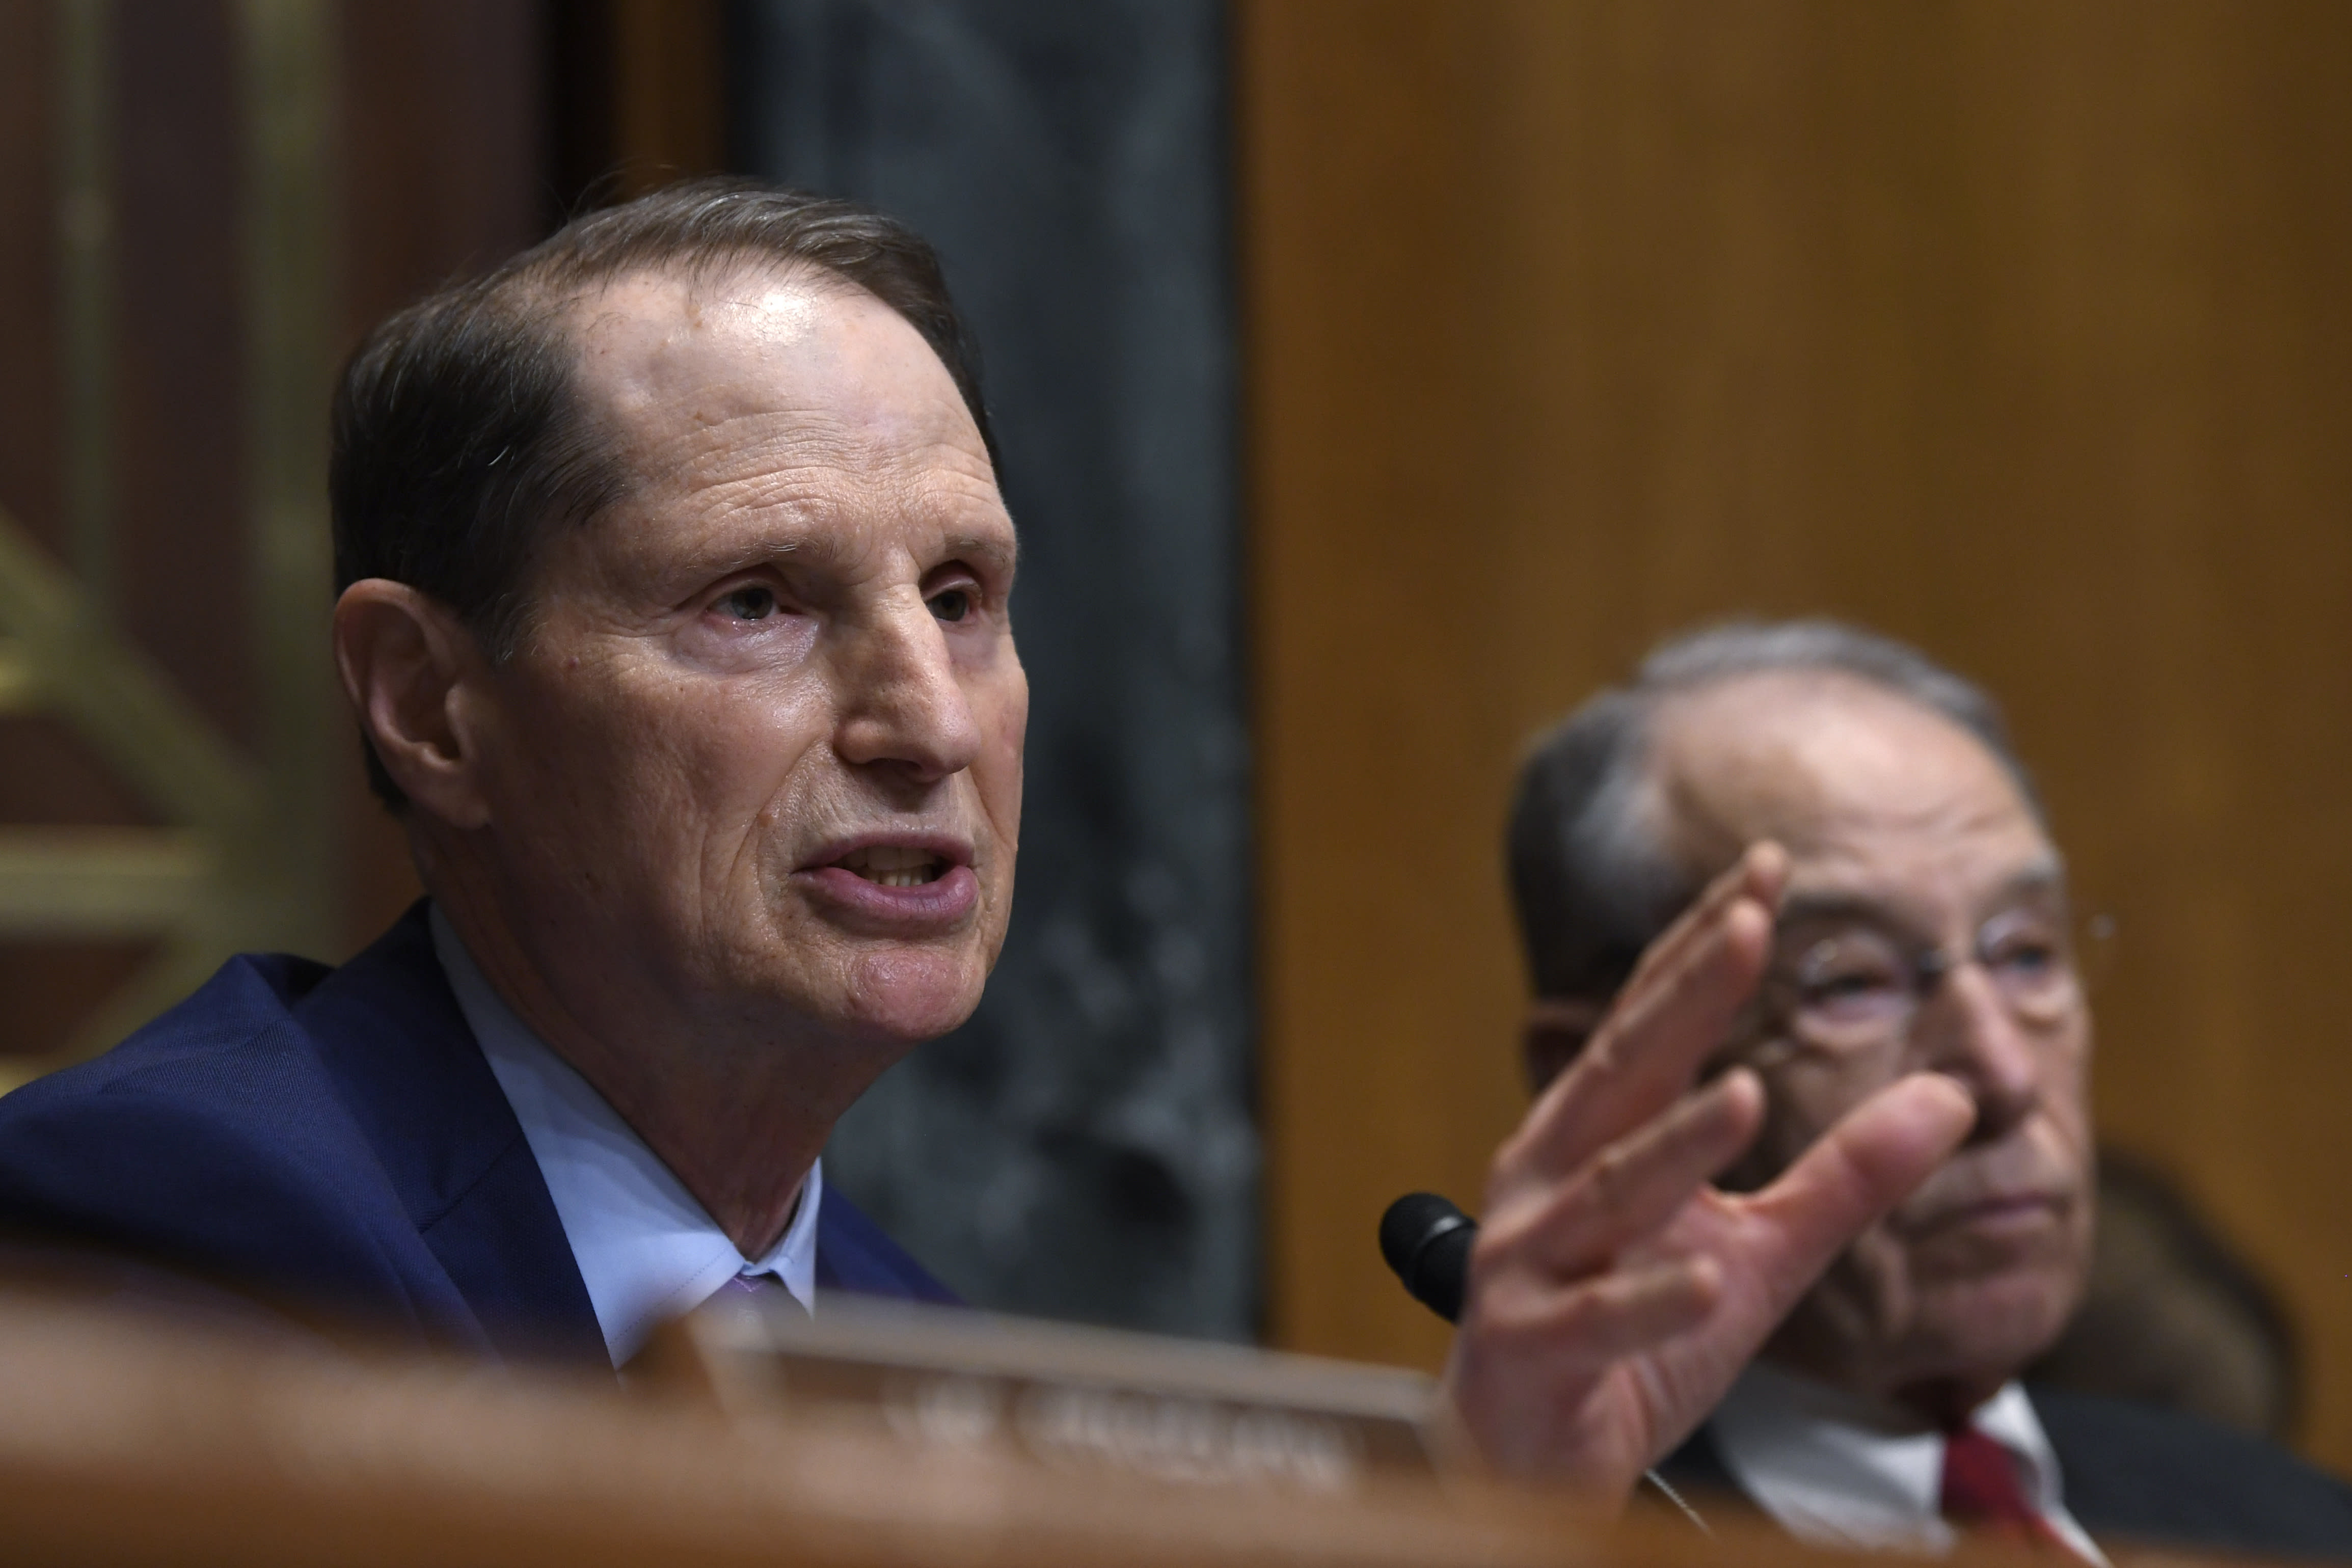 Sen. Wyden: We need more transparency on how Big Tech works